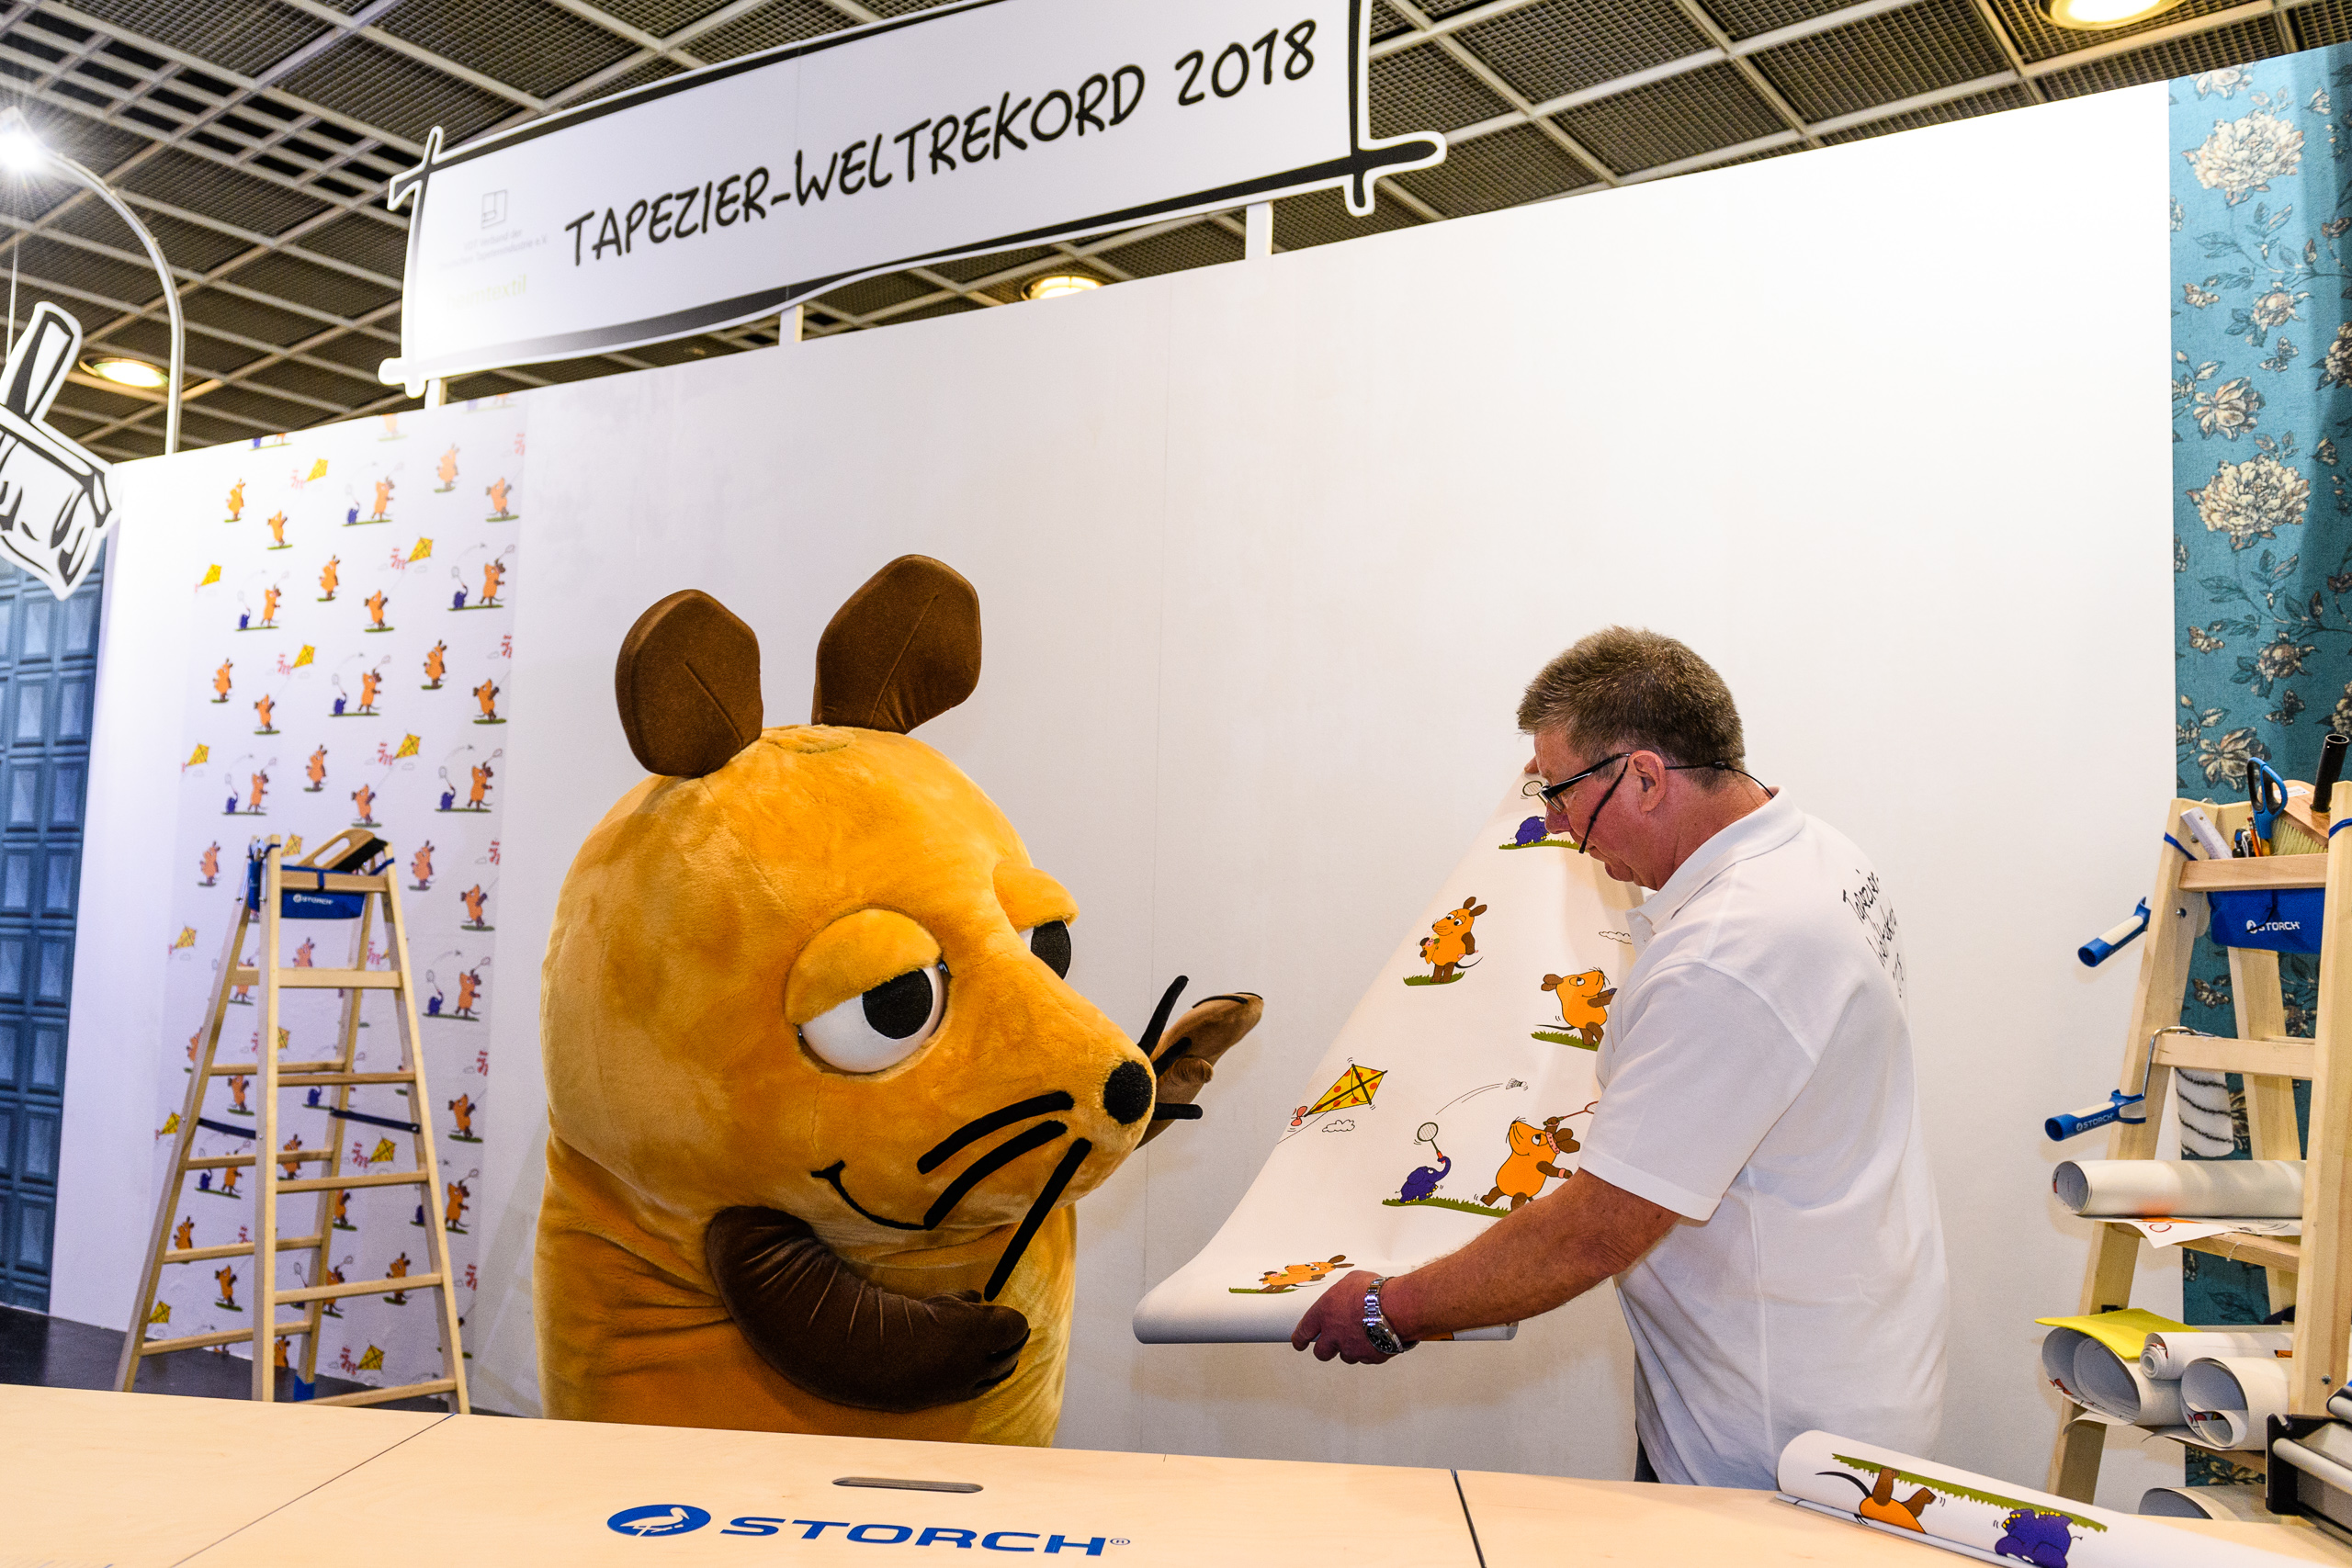 heimtextil-paperhanging-world record - the mouse